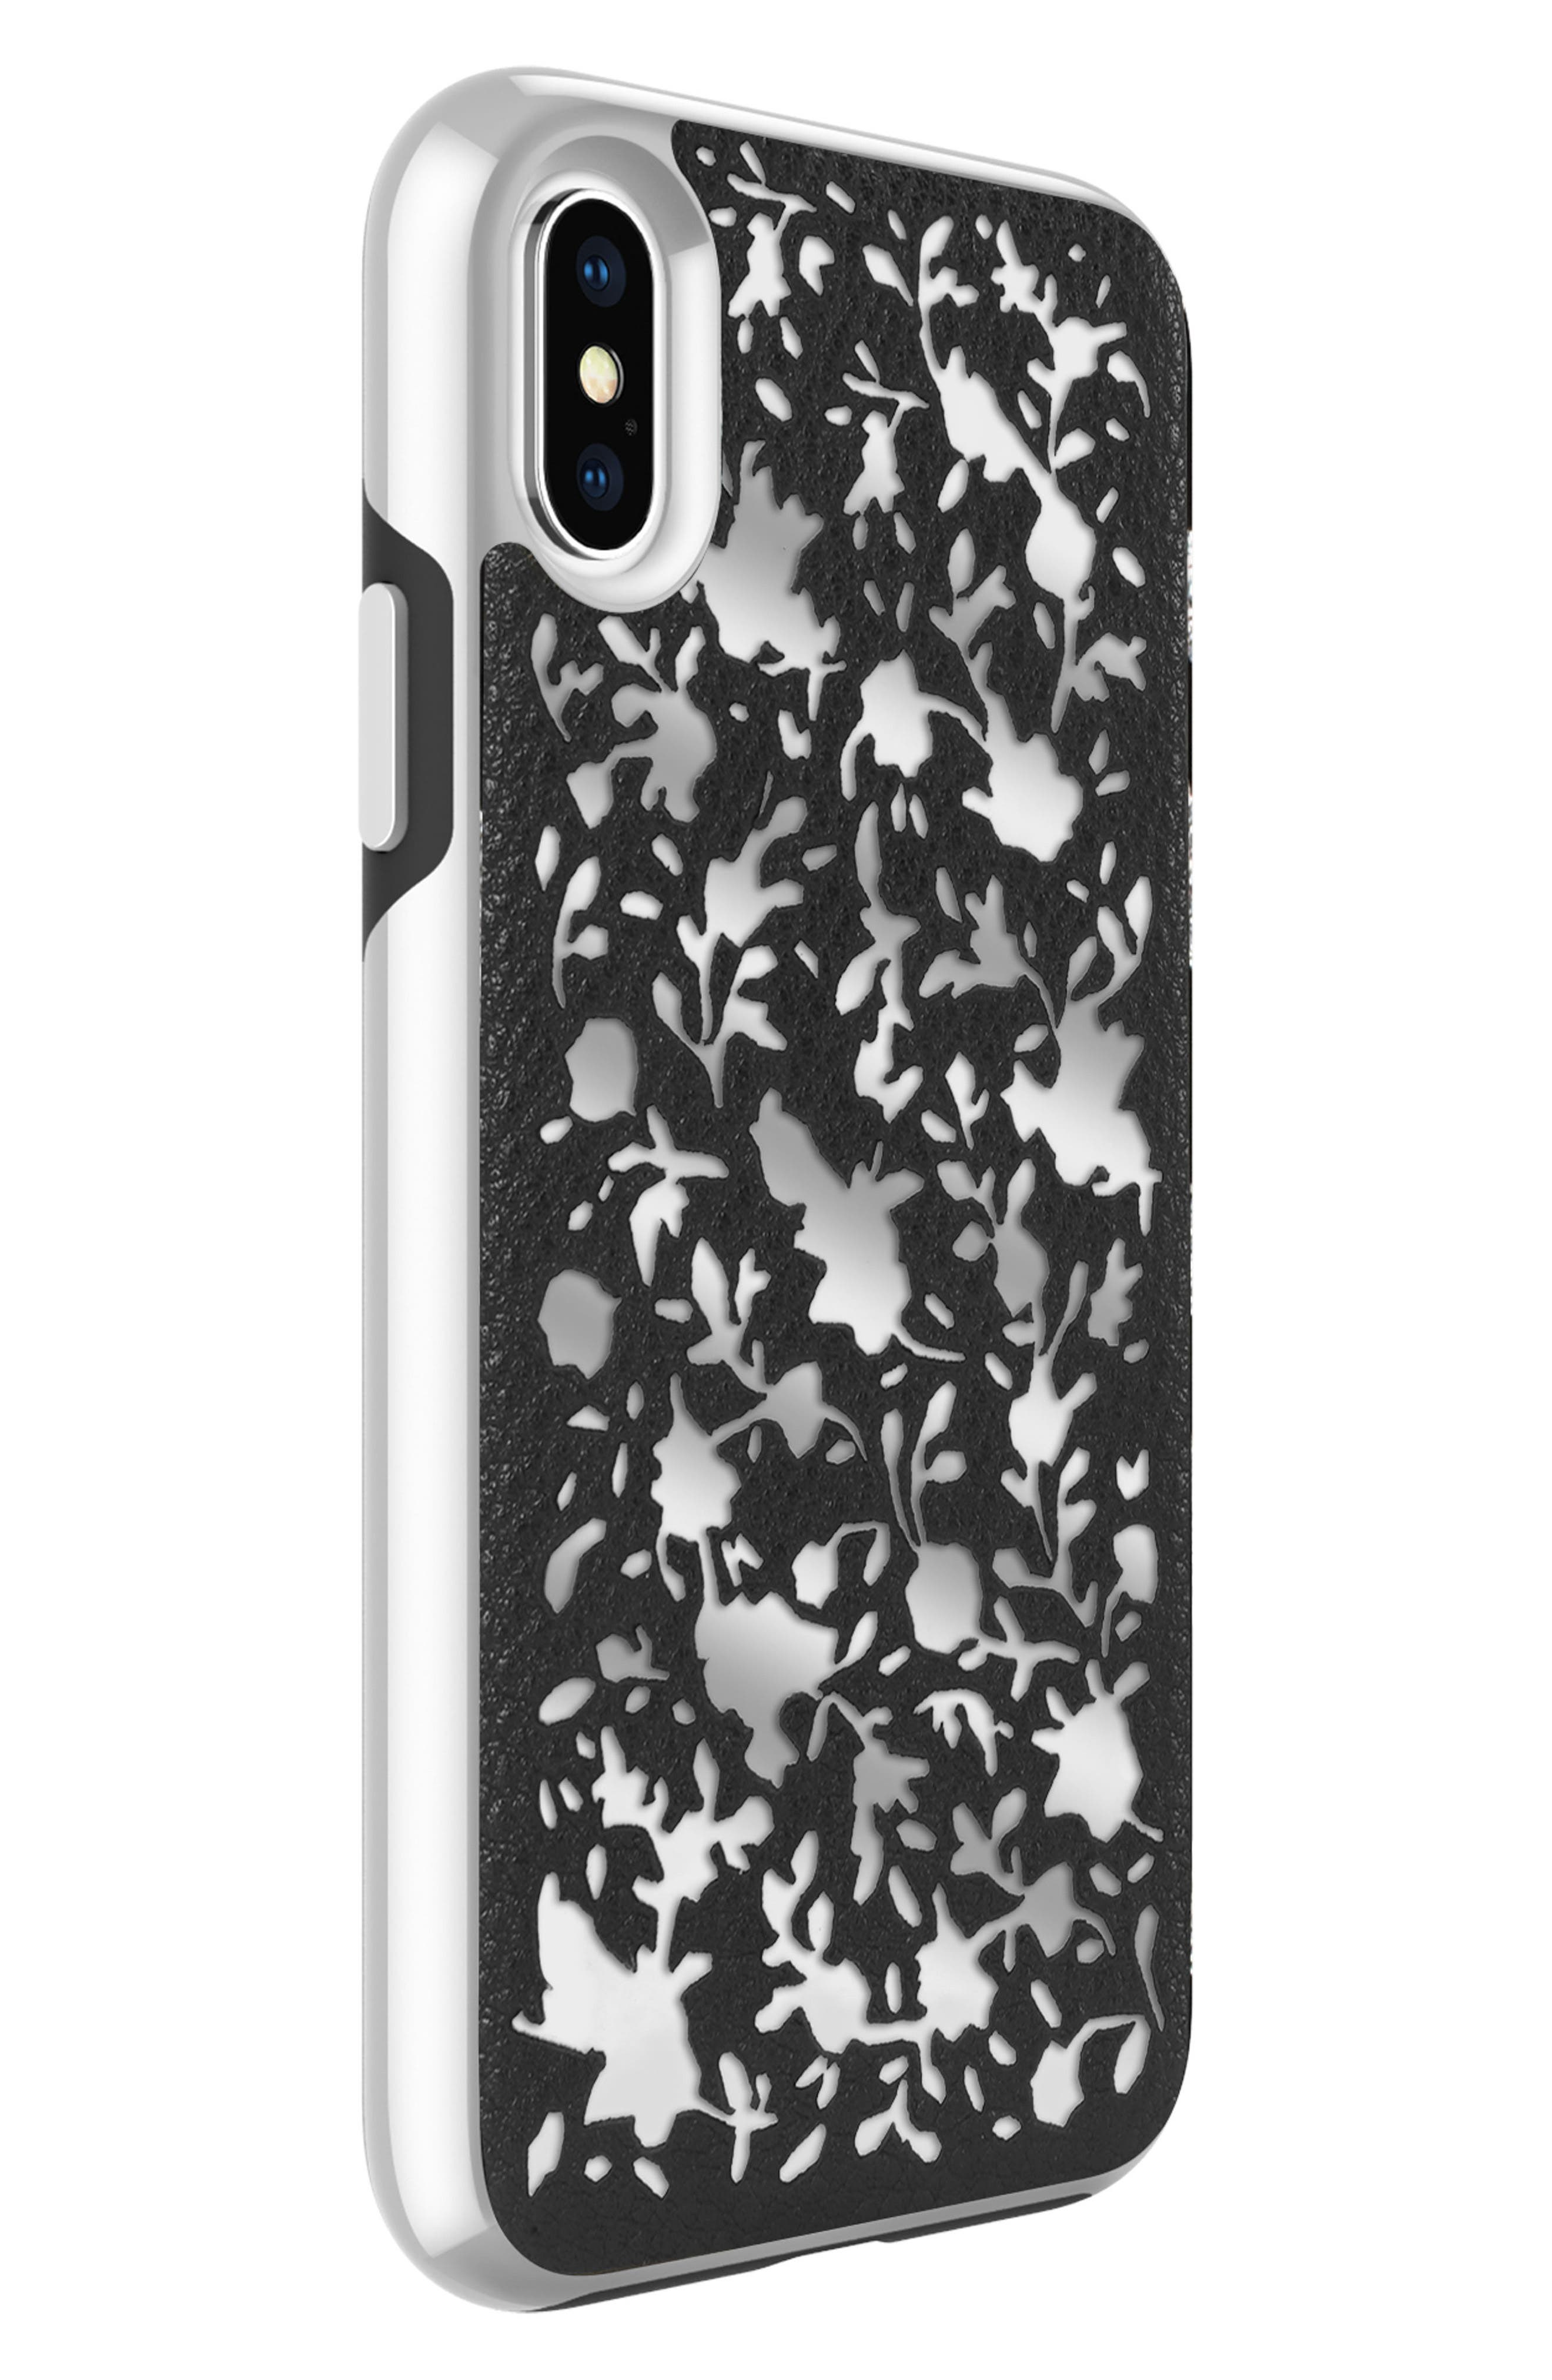 Luxury Calls Ditzy Floral iPhone X/Xs Case,                             Alternate thumbnail 6, color,                             BLACK/ SILVER